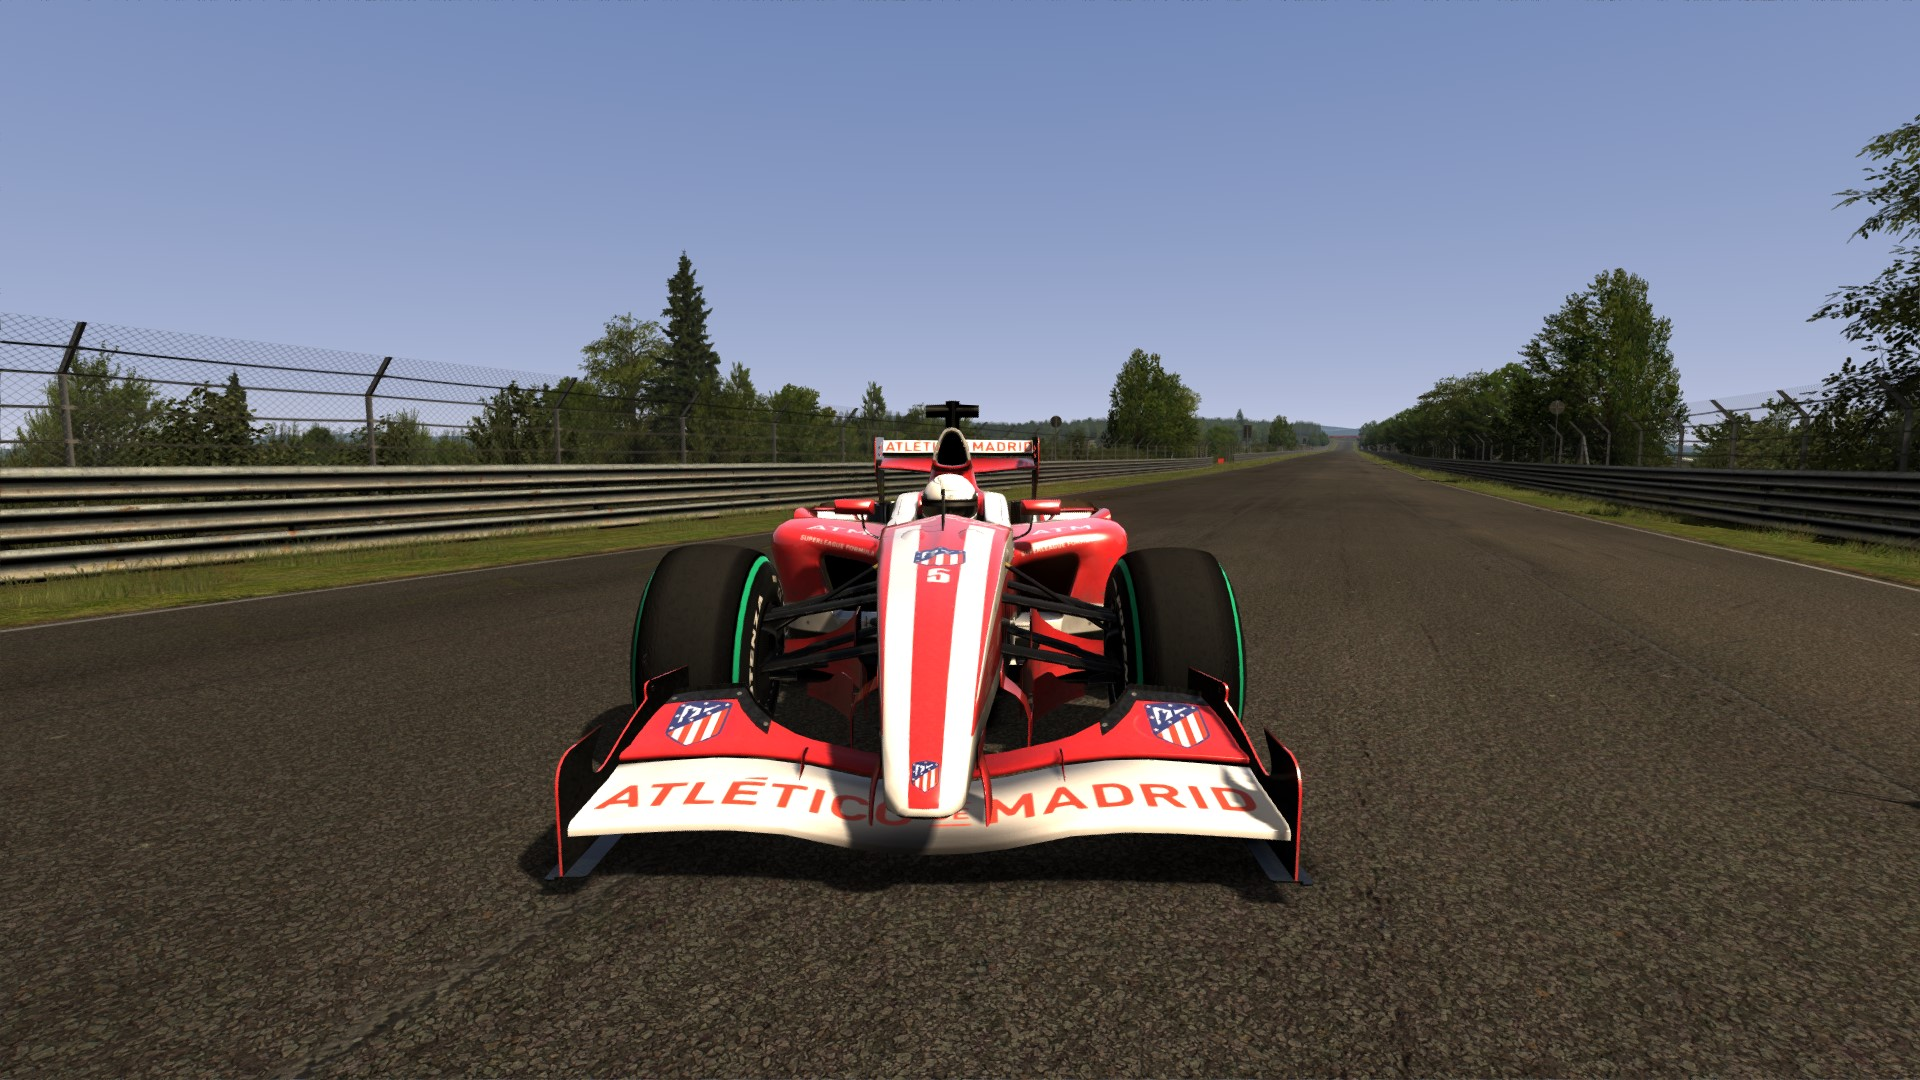 Screenshot_superleague_formula_ks_nordschleife_17-6-119-19-10-21.jpg